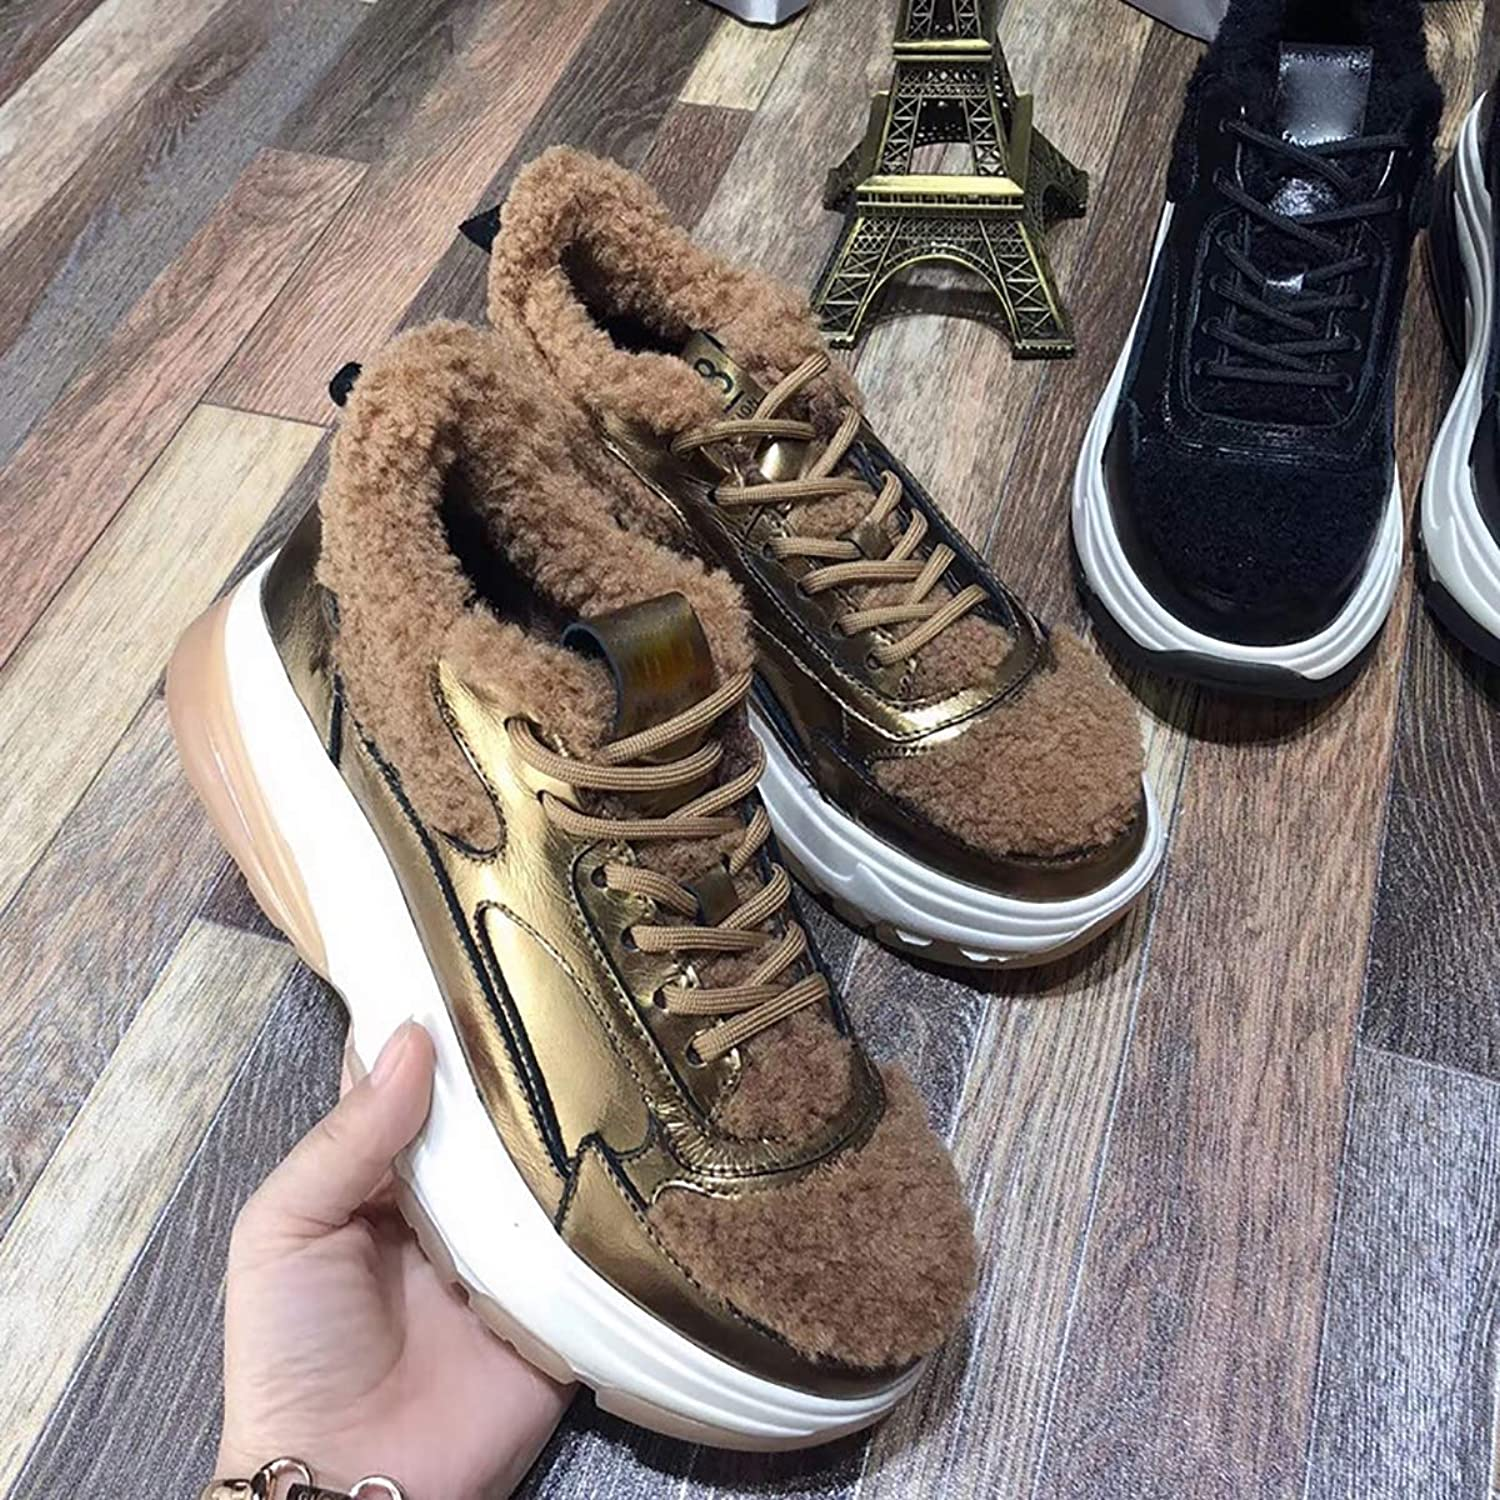 Plus Velvet Low shoes Women Winter, Leather lace Student Casual Muffin Thick-Soled Lamb Fur Sneakers,Brown,37